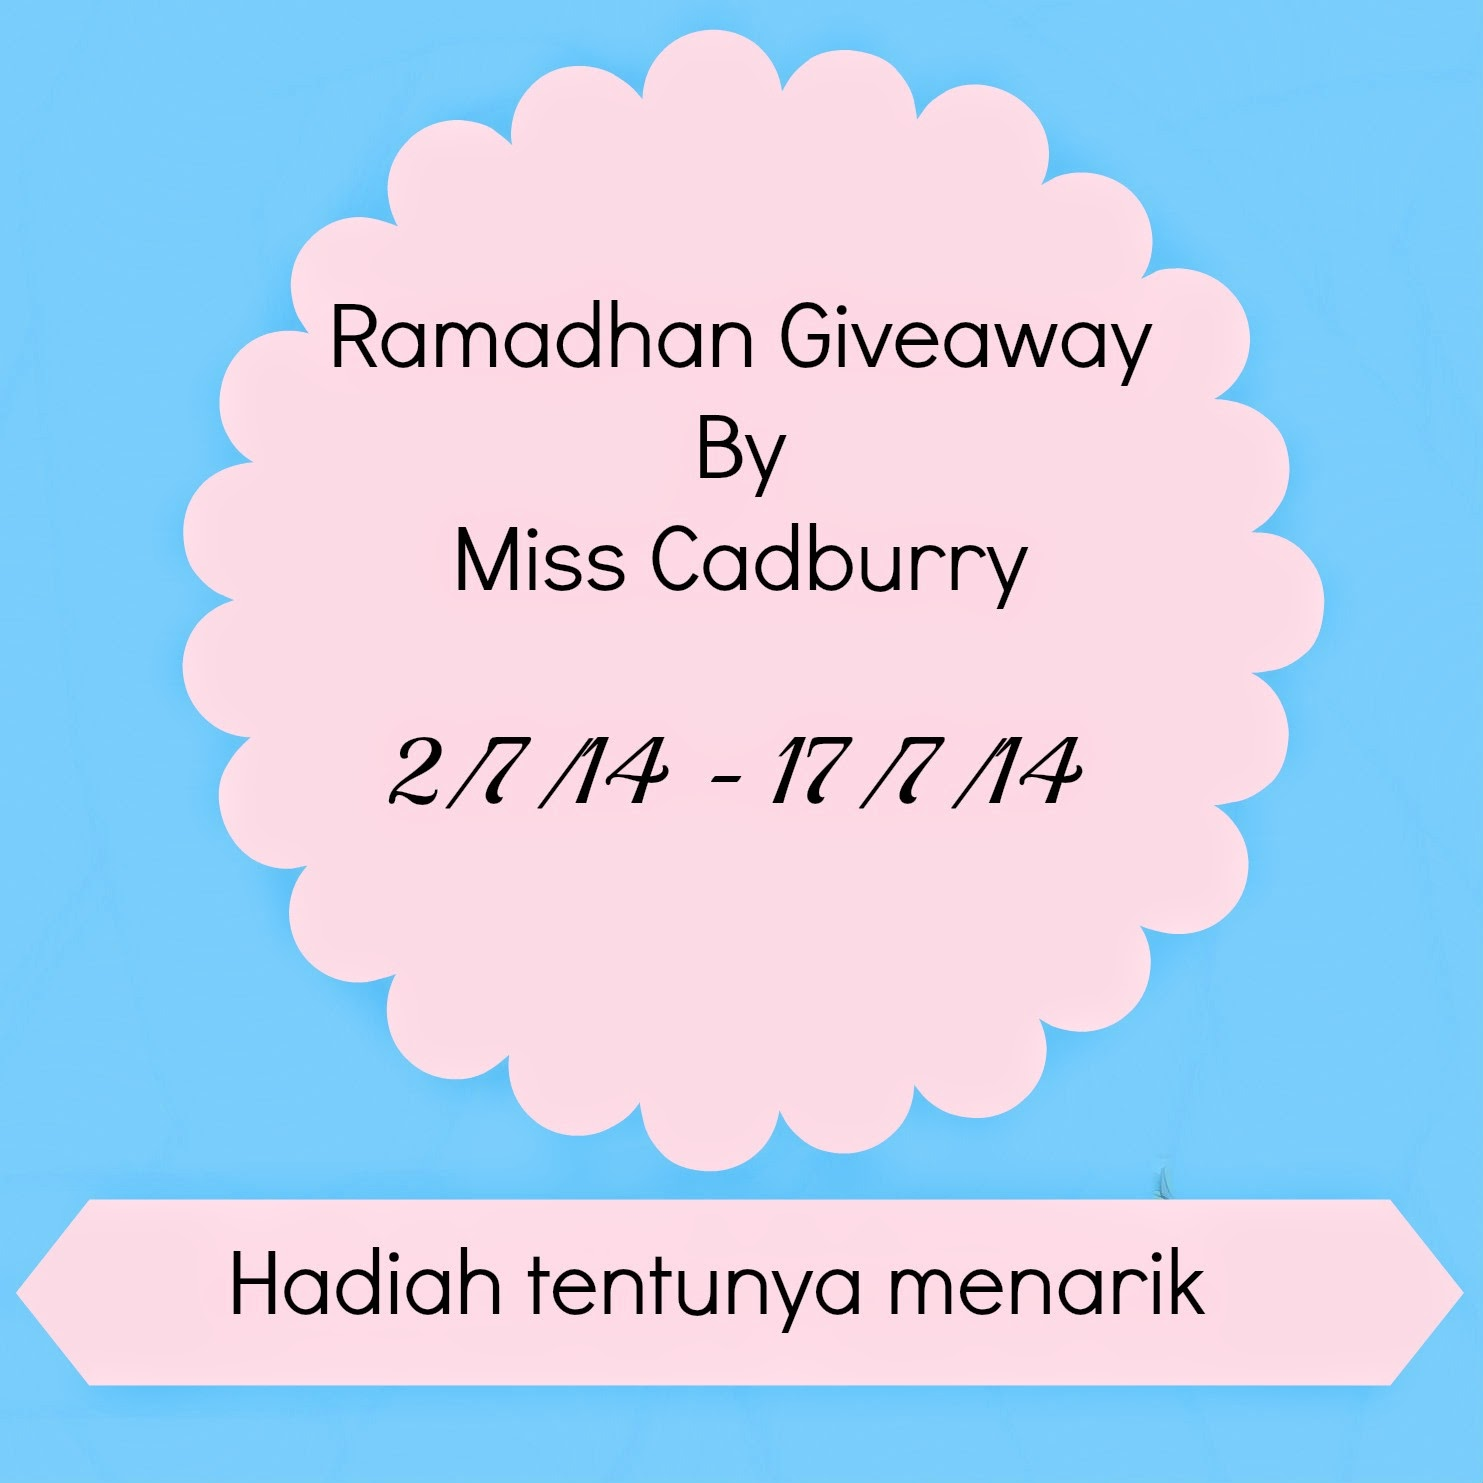 Ramadhan Giveaway By Miss Cadburry